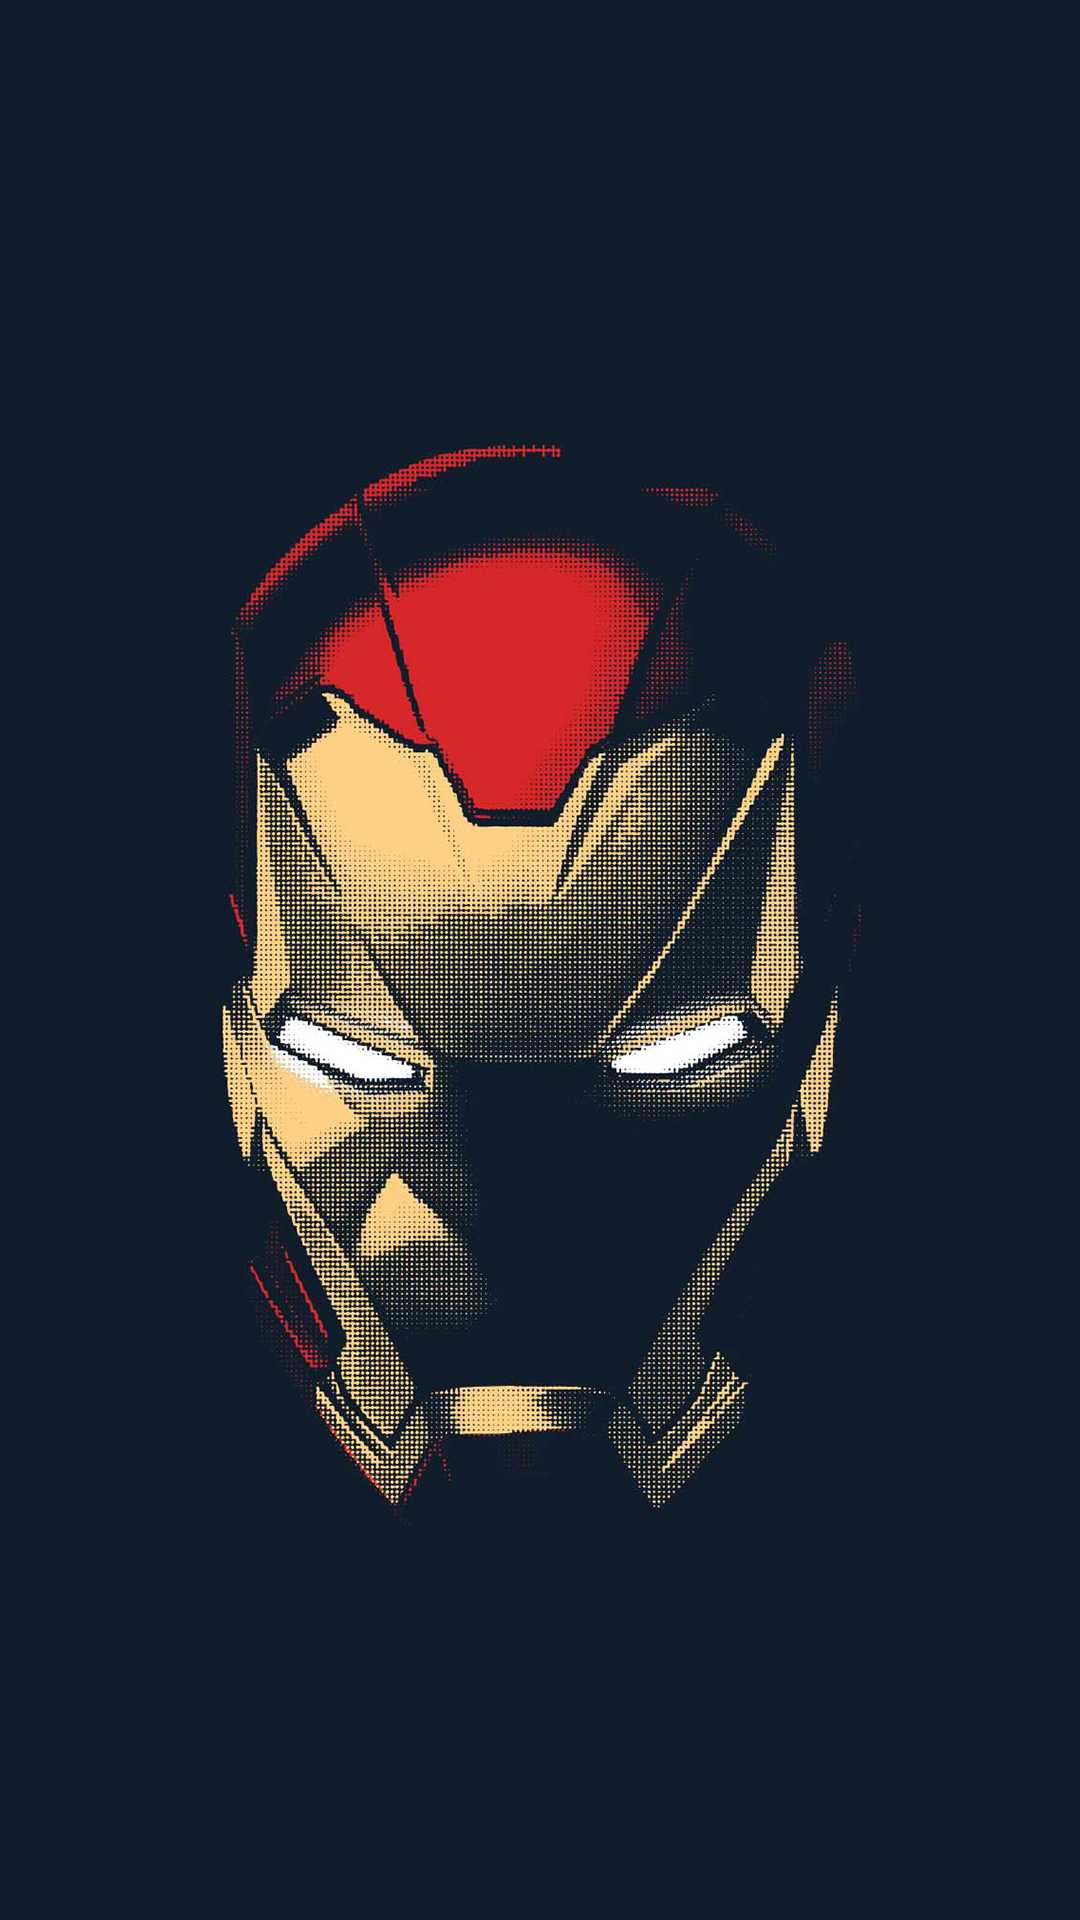 Iron Man Helmet Art iPhone Wallpaper